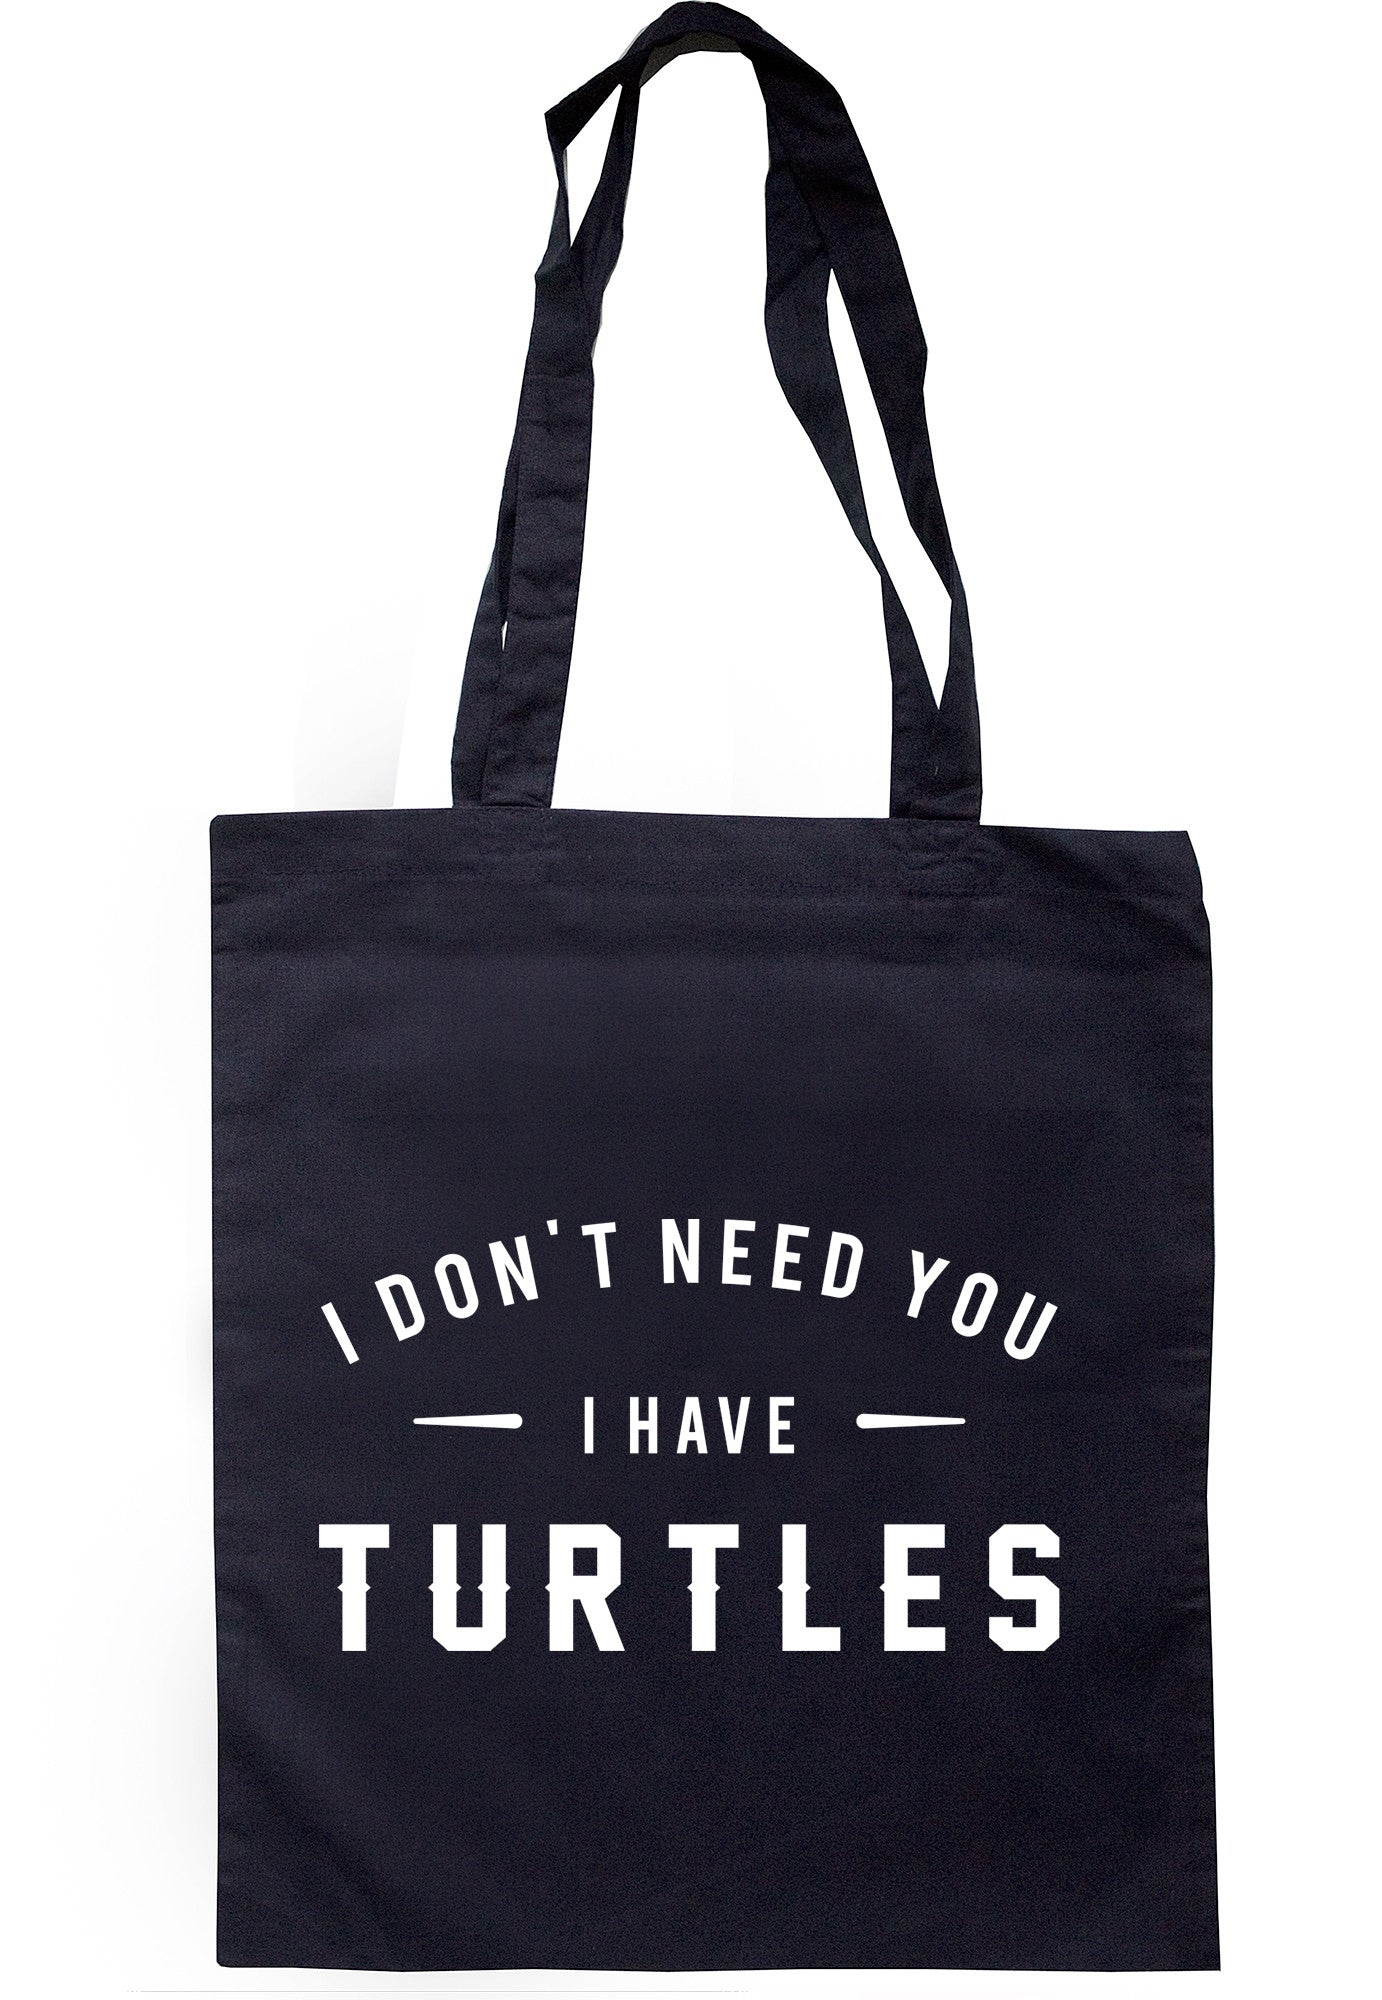 I Don't Need You I Have Turtles Tote Bag TB0613 - Illustrated Identity Ltd.